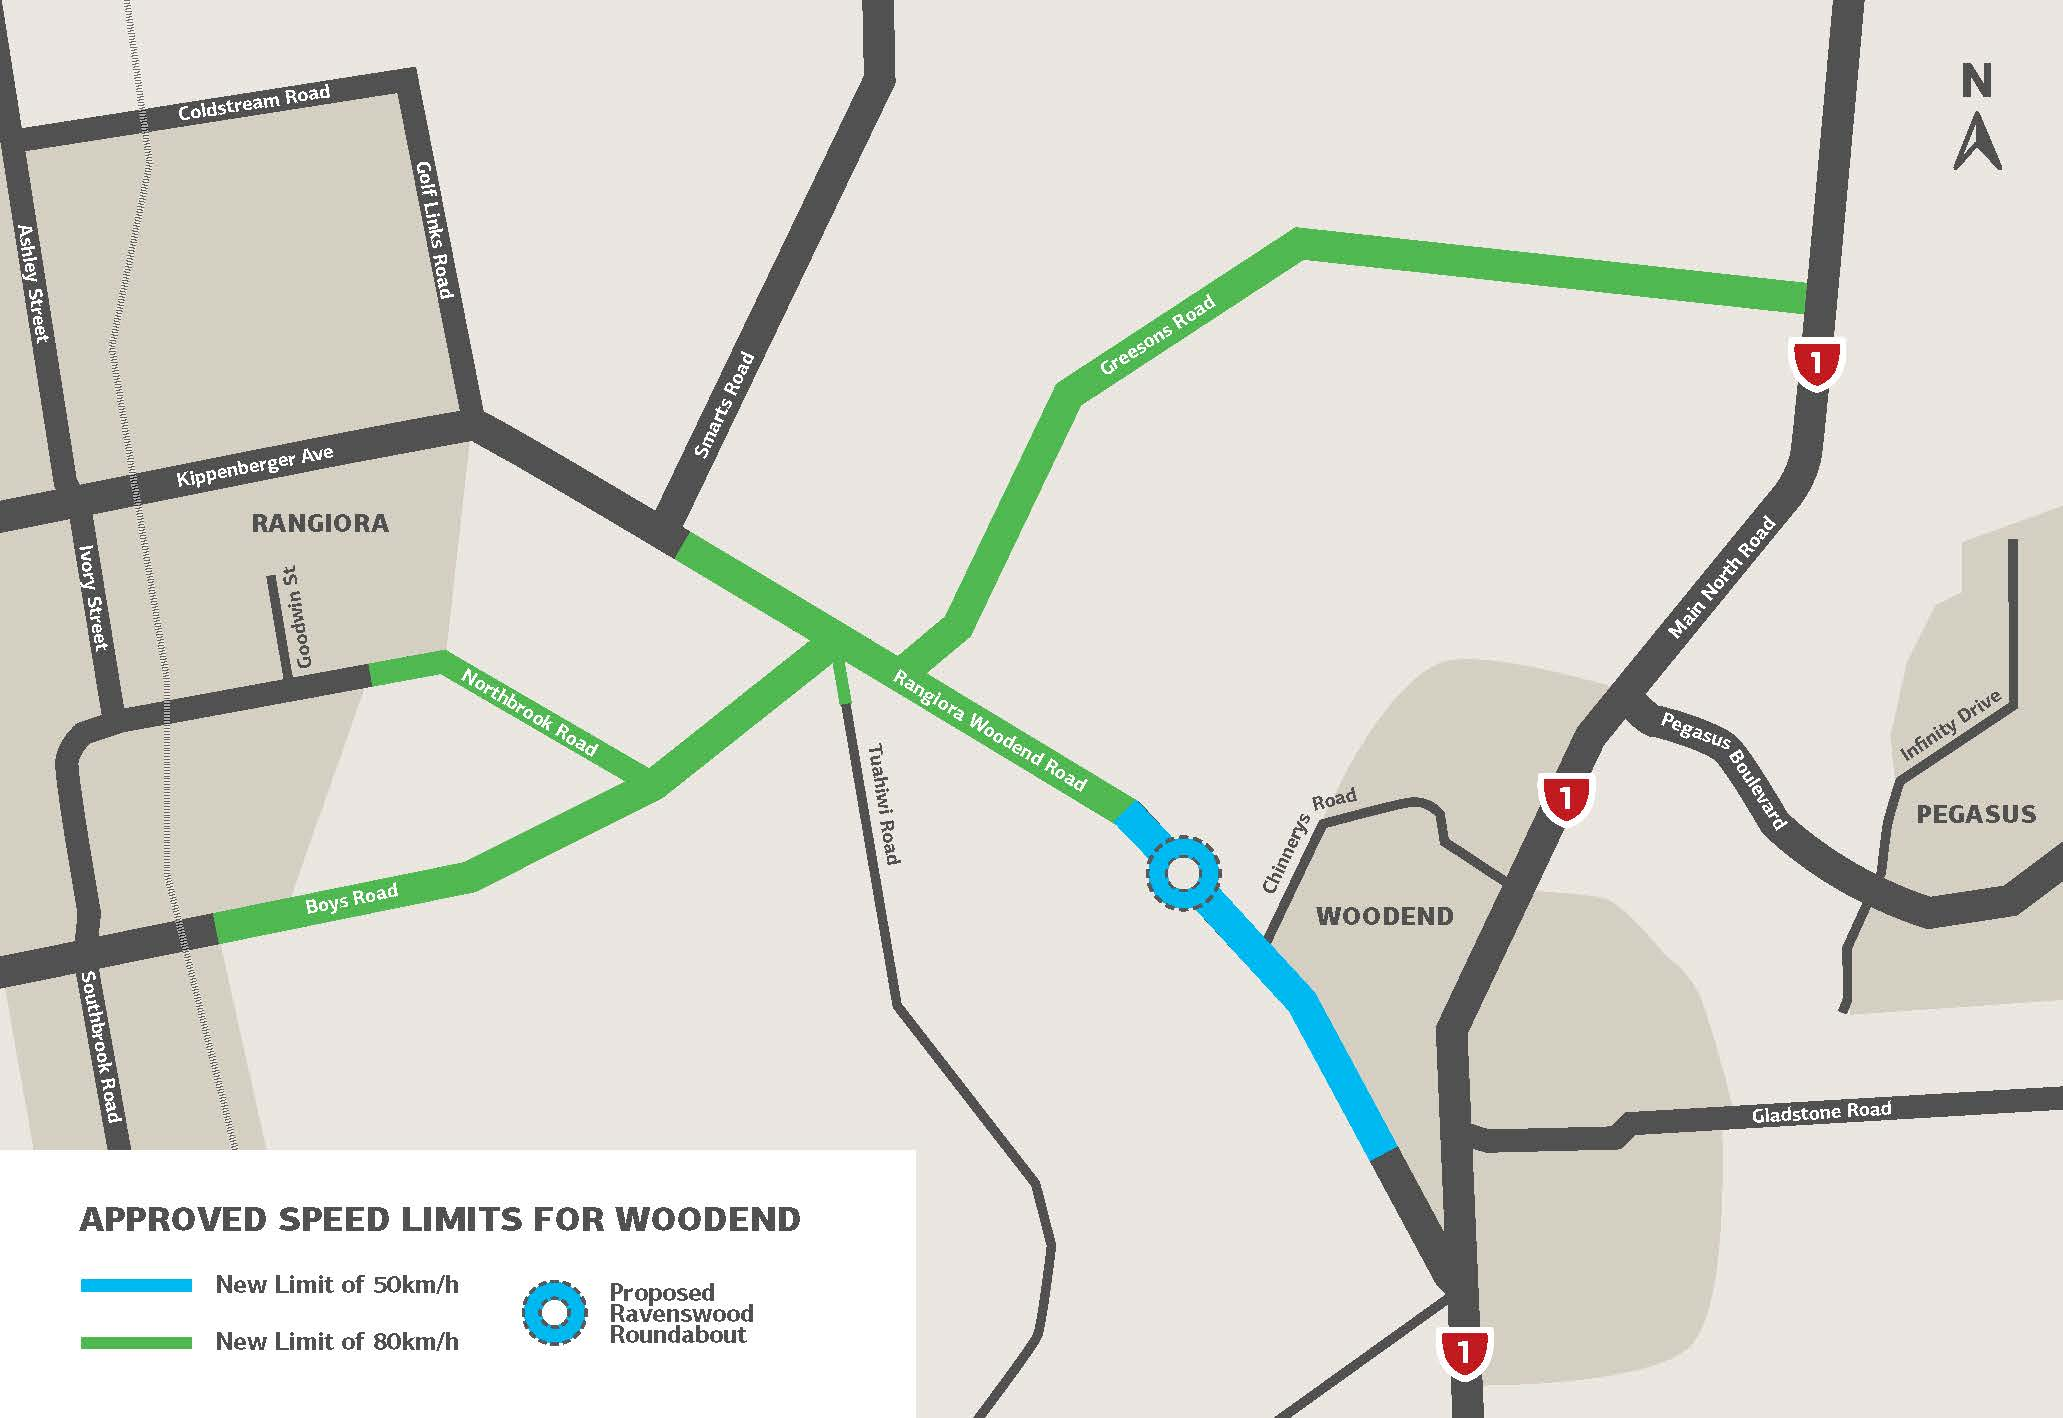 Map showing the roads between Woodend and Rangiora where reduced speeds will apply from 28th January 2018.